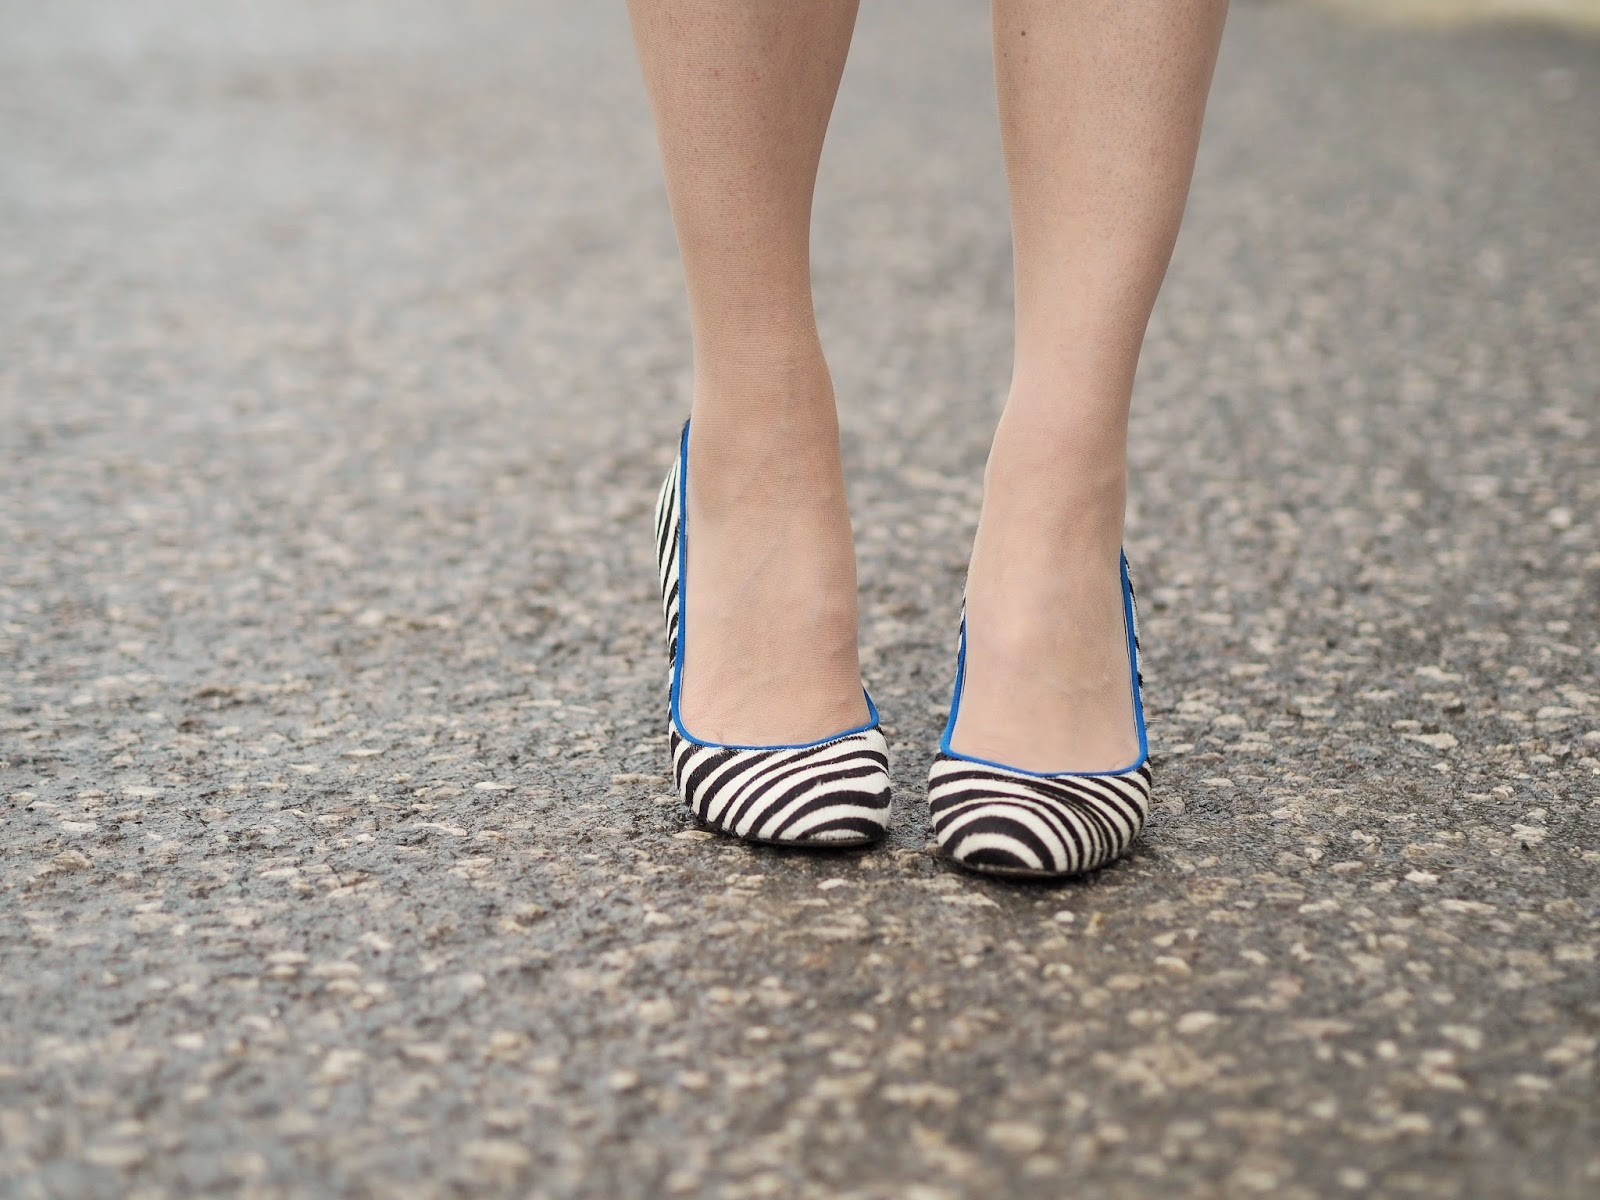 Zebra print shoes with cobalt blue heel and trim